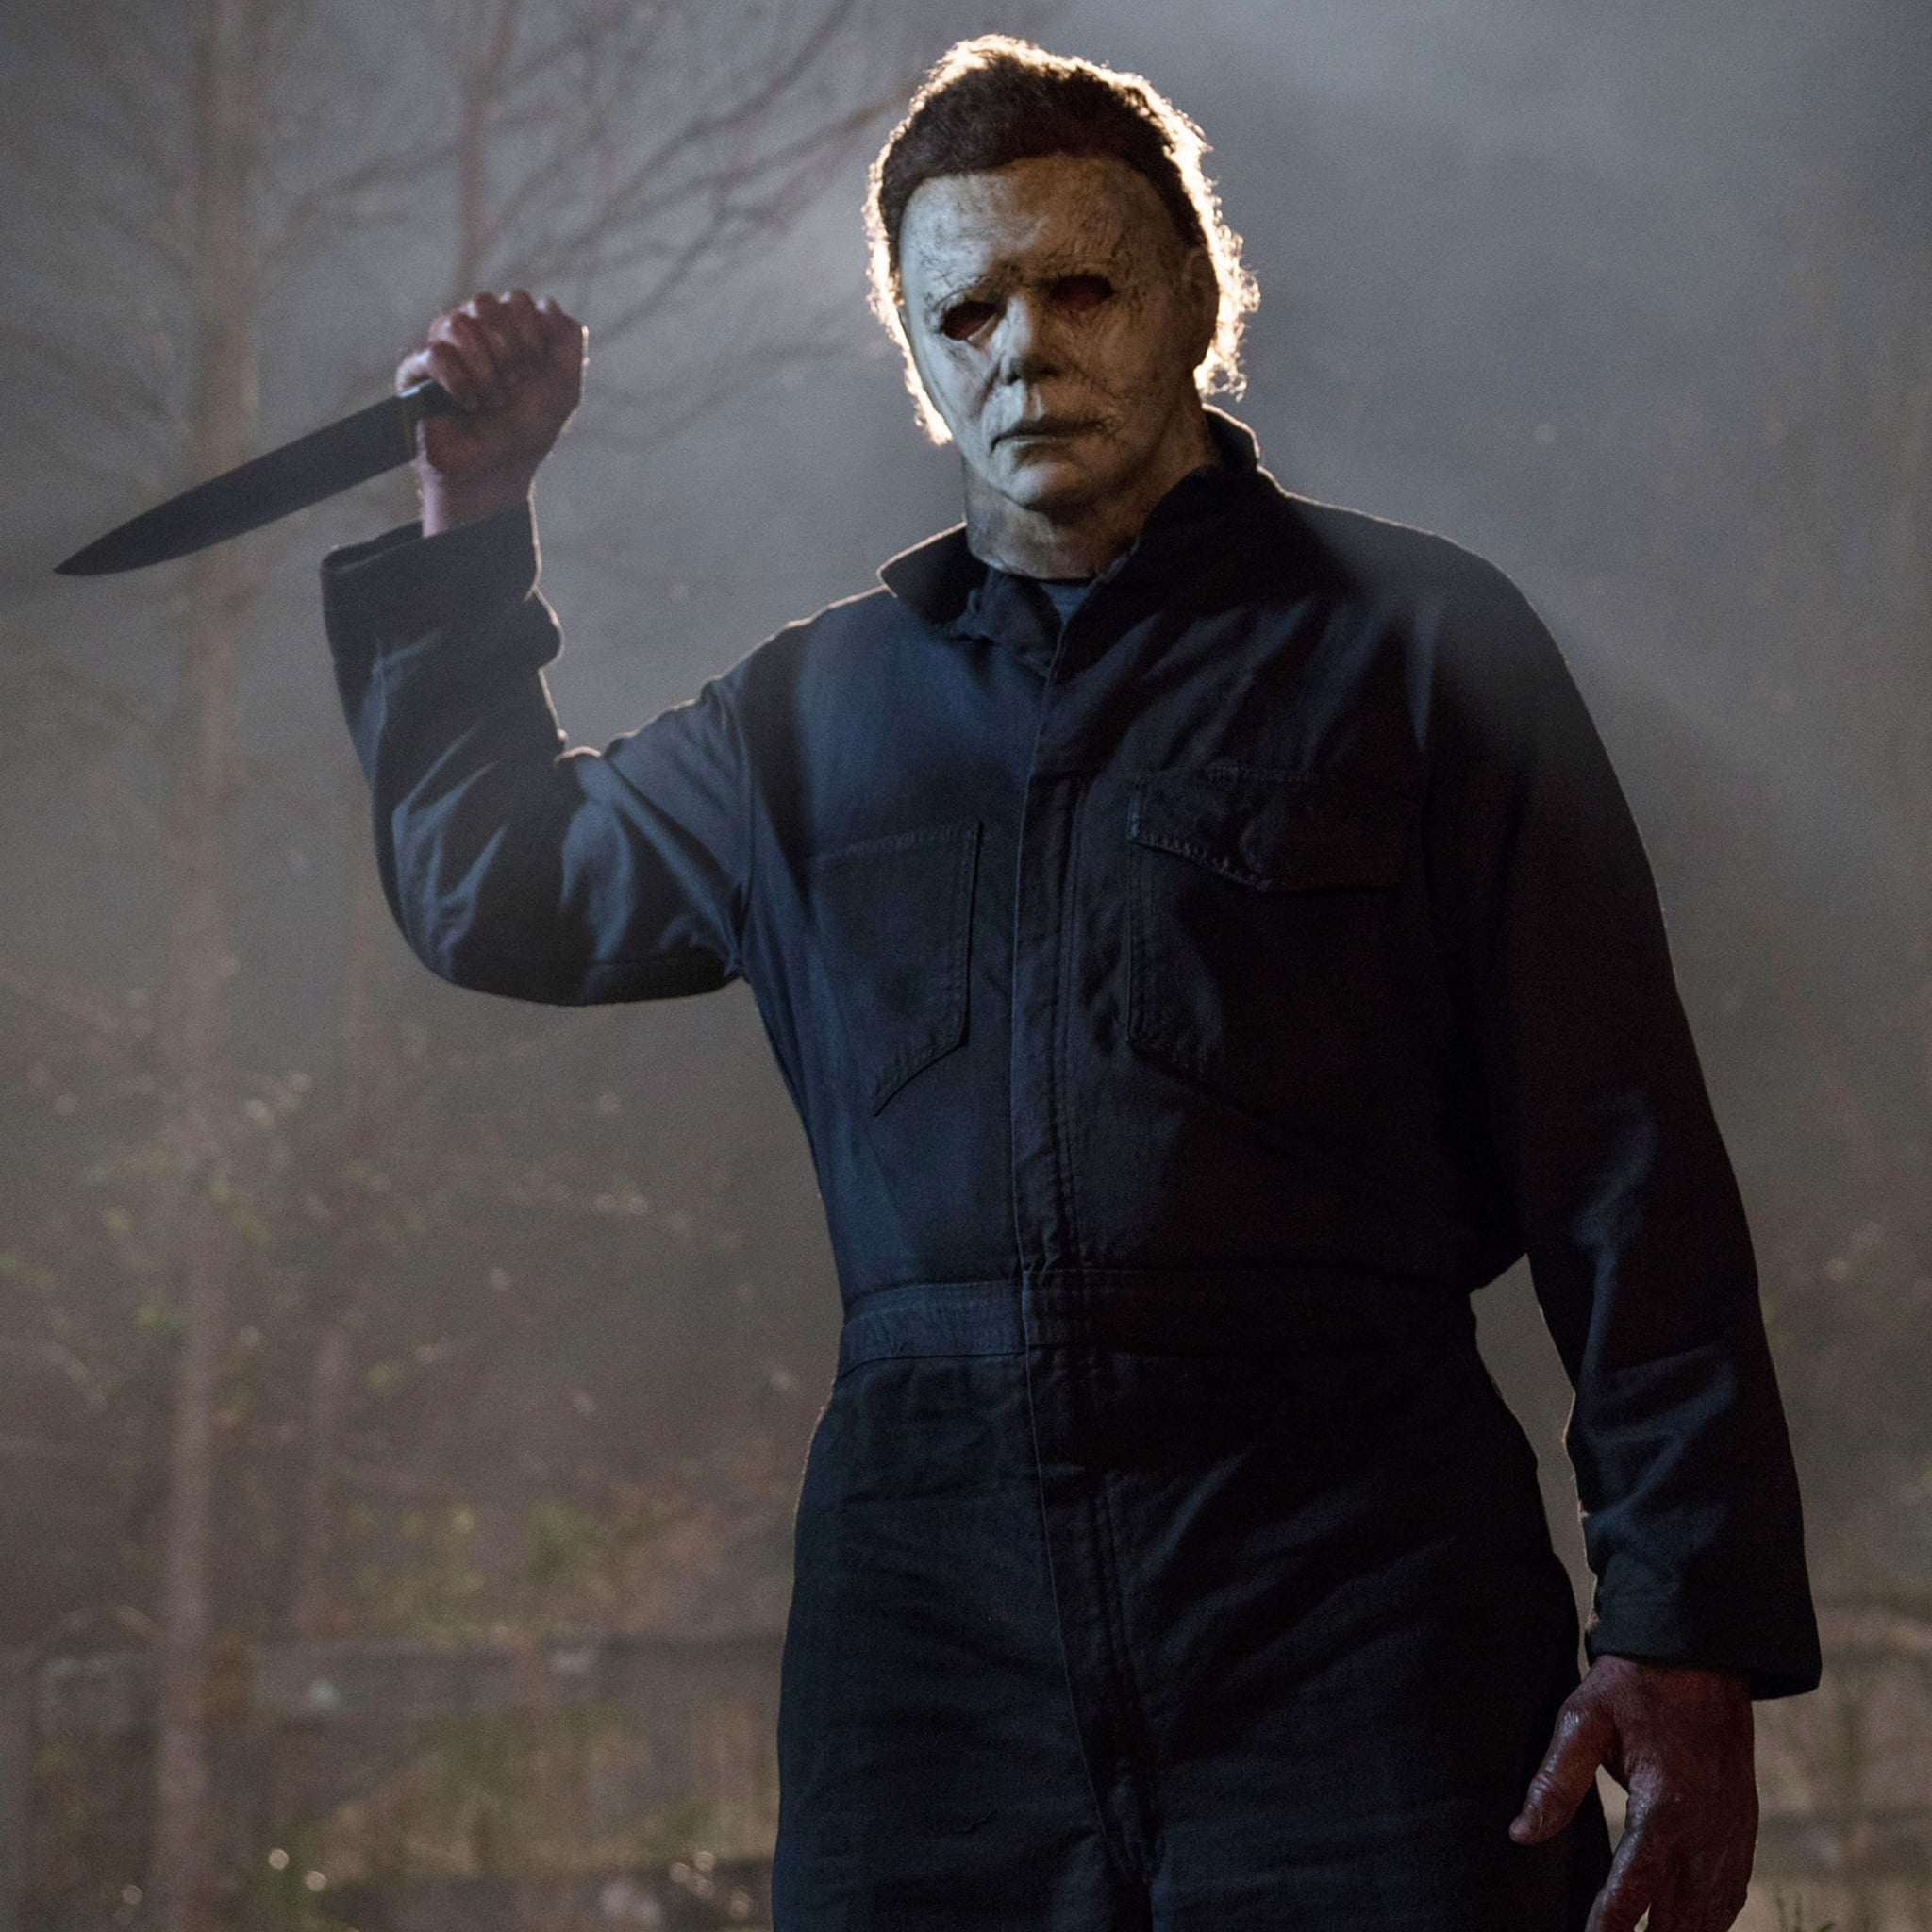 who plays michael myers in halloween 2018? | popsugar entertainment